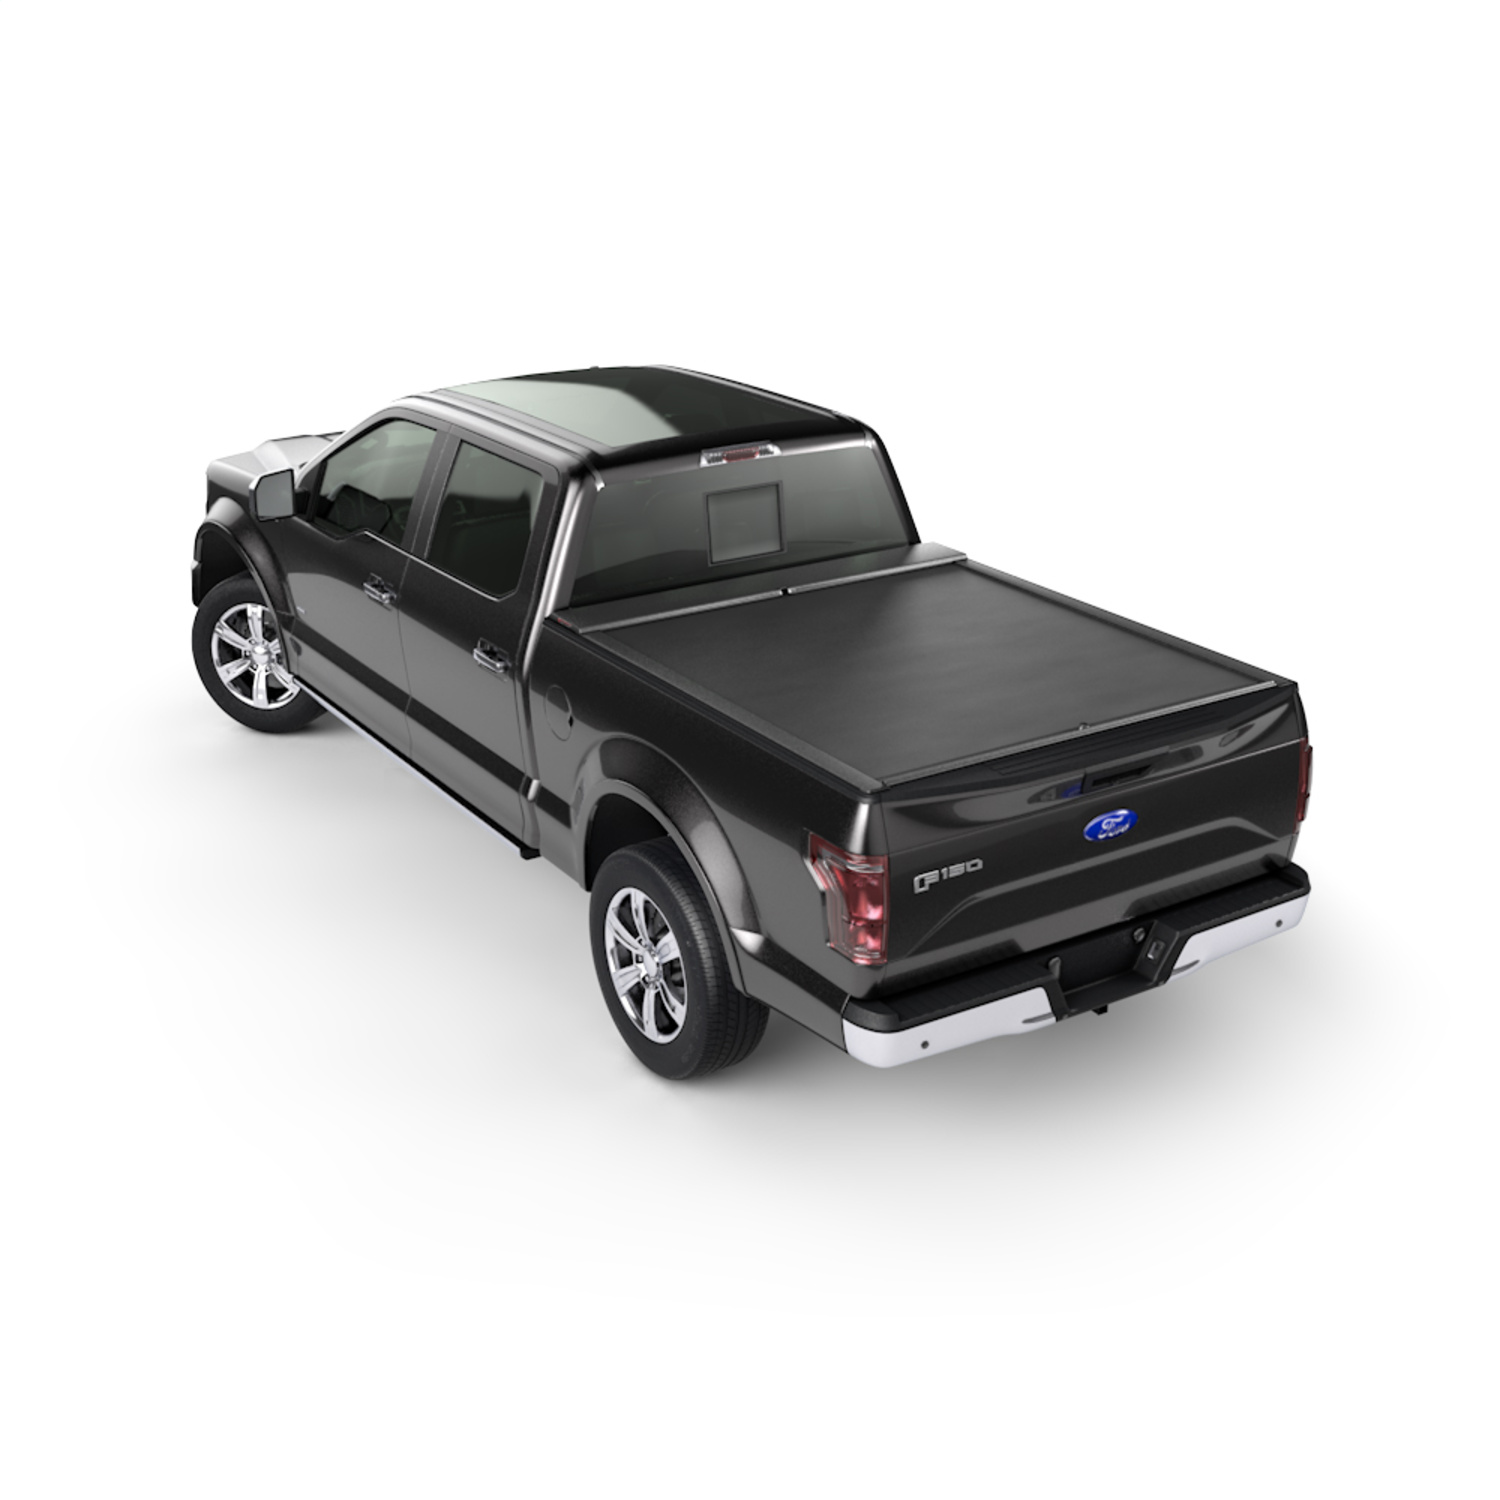 Roll-N-Lockr M-Series Truck Bed Cover, Manual Retractable